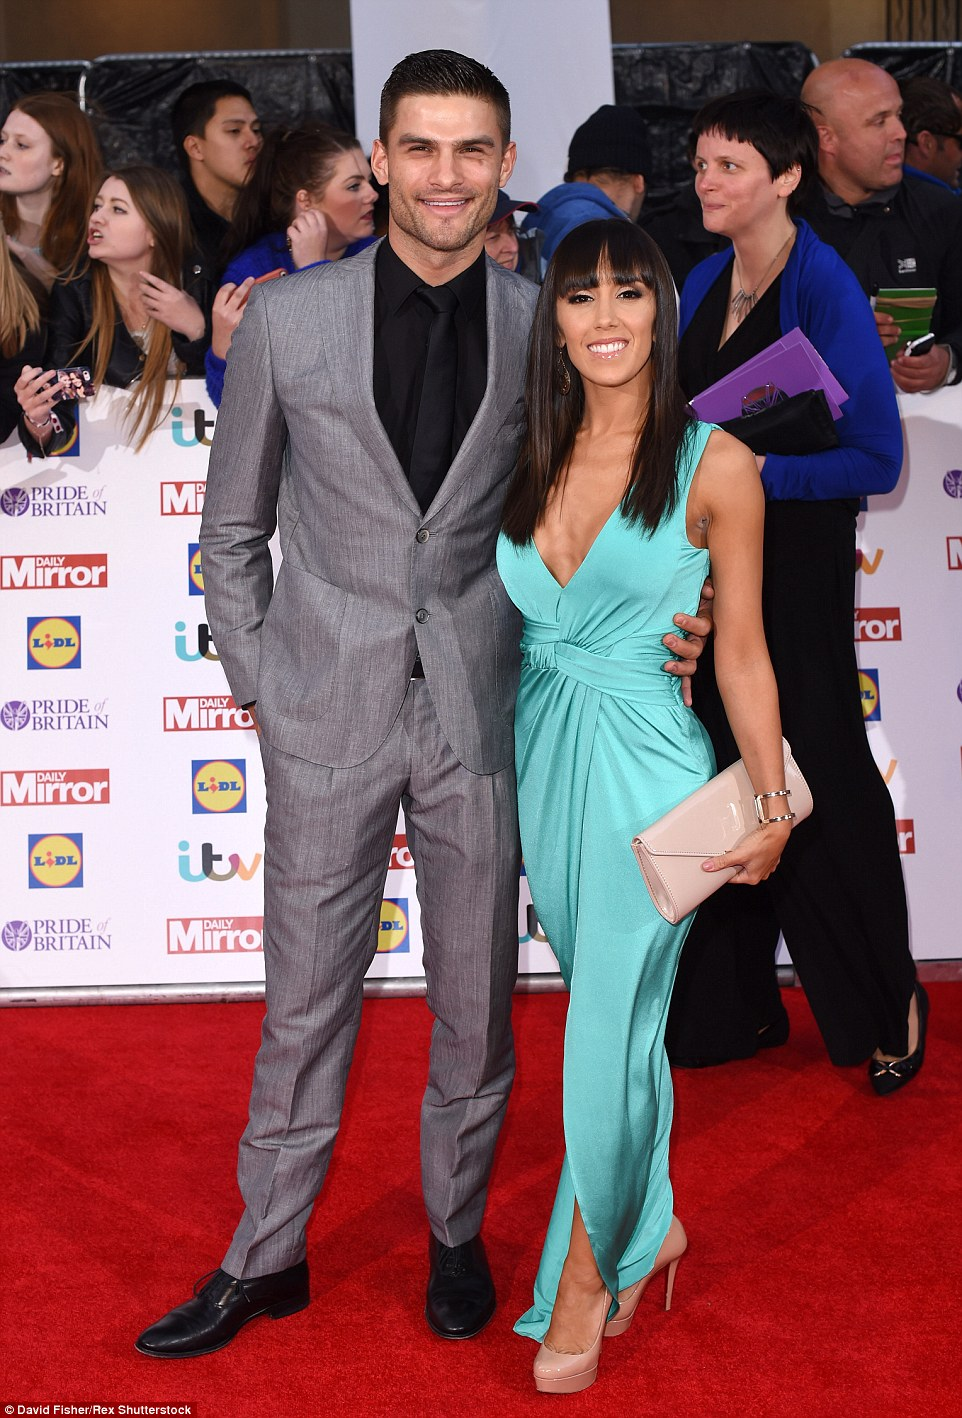 Lovebirds: Dancing pros Aljaz Skorjanec and Janette Manrara looked picture perfect on the red-carpet